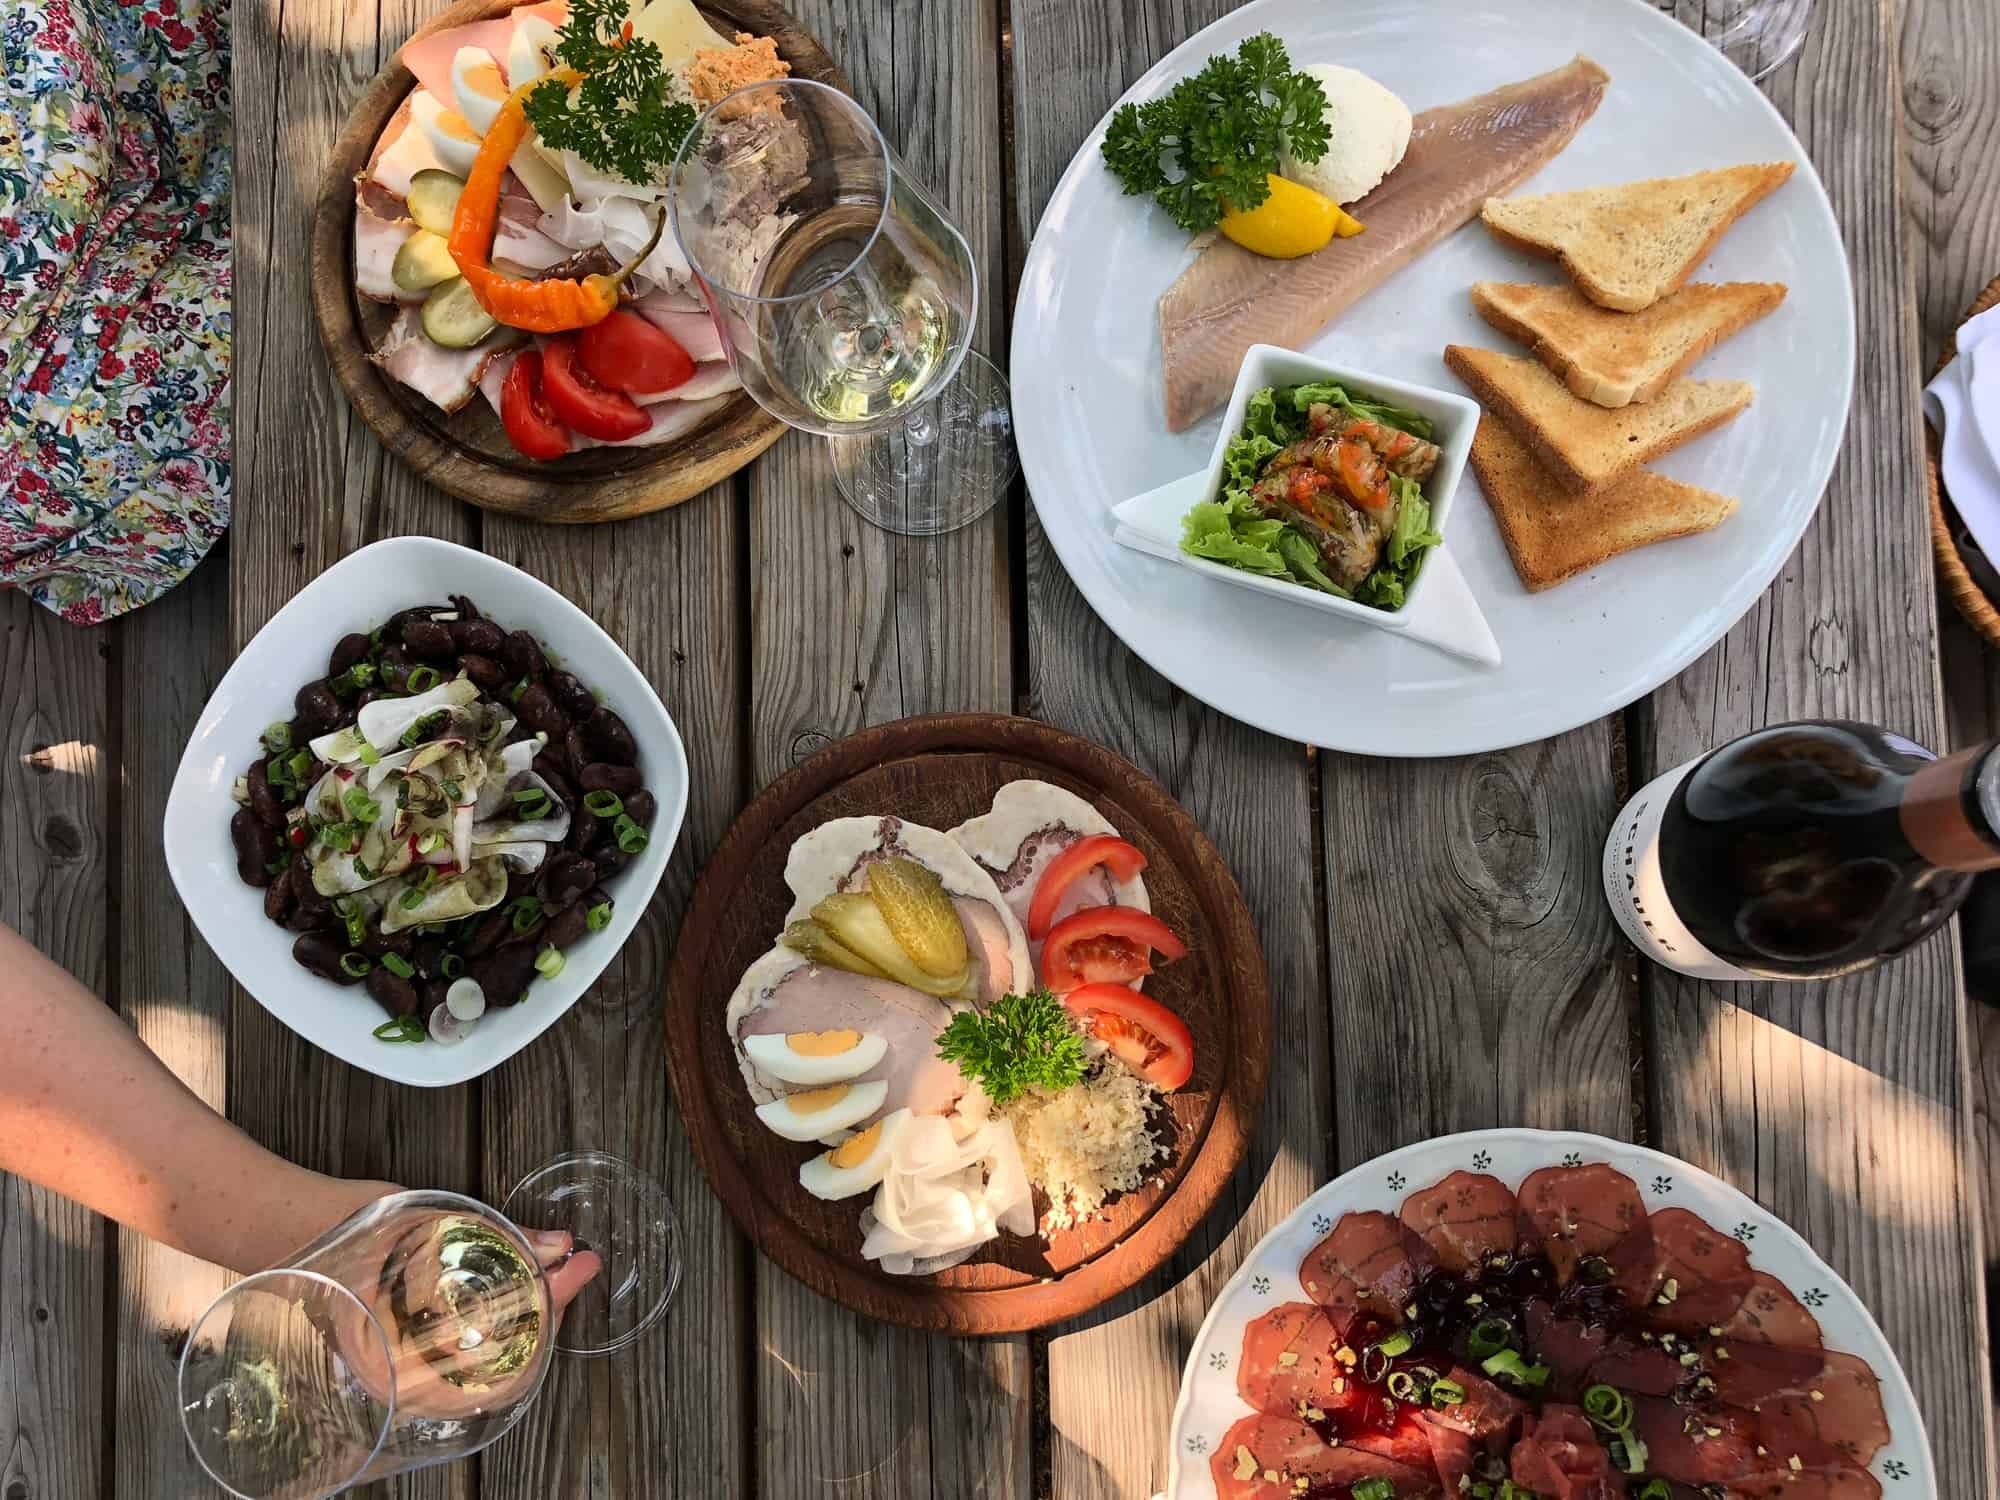 Food and drink quiz questions - woman in Borneo - round the world food questions - outdoor food platter